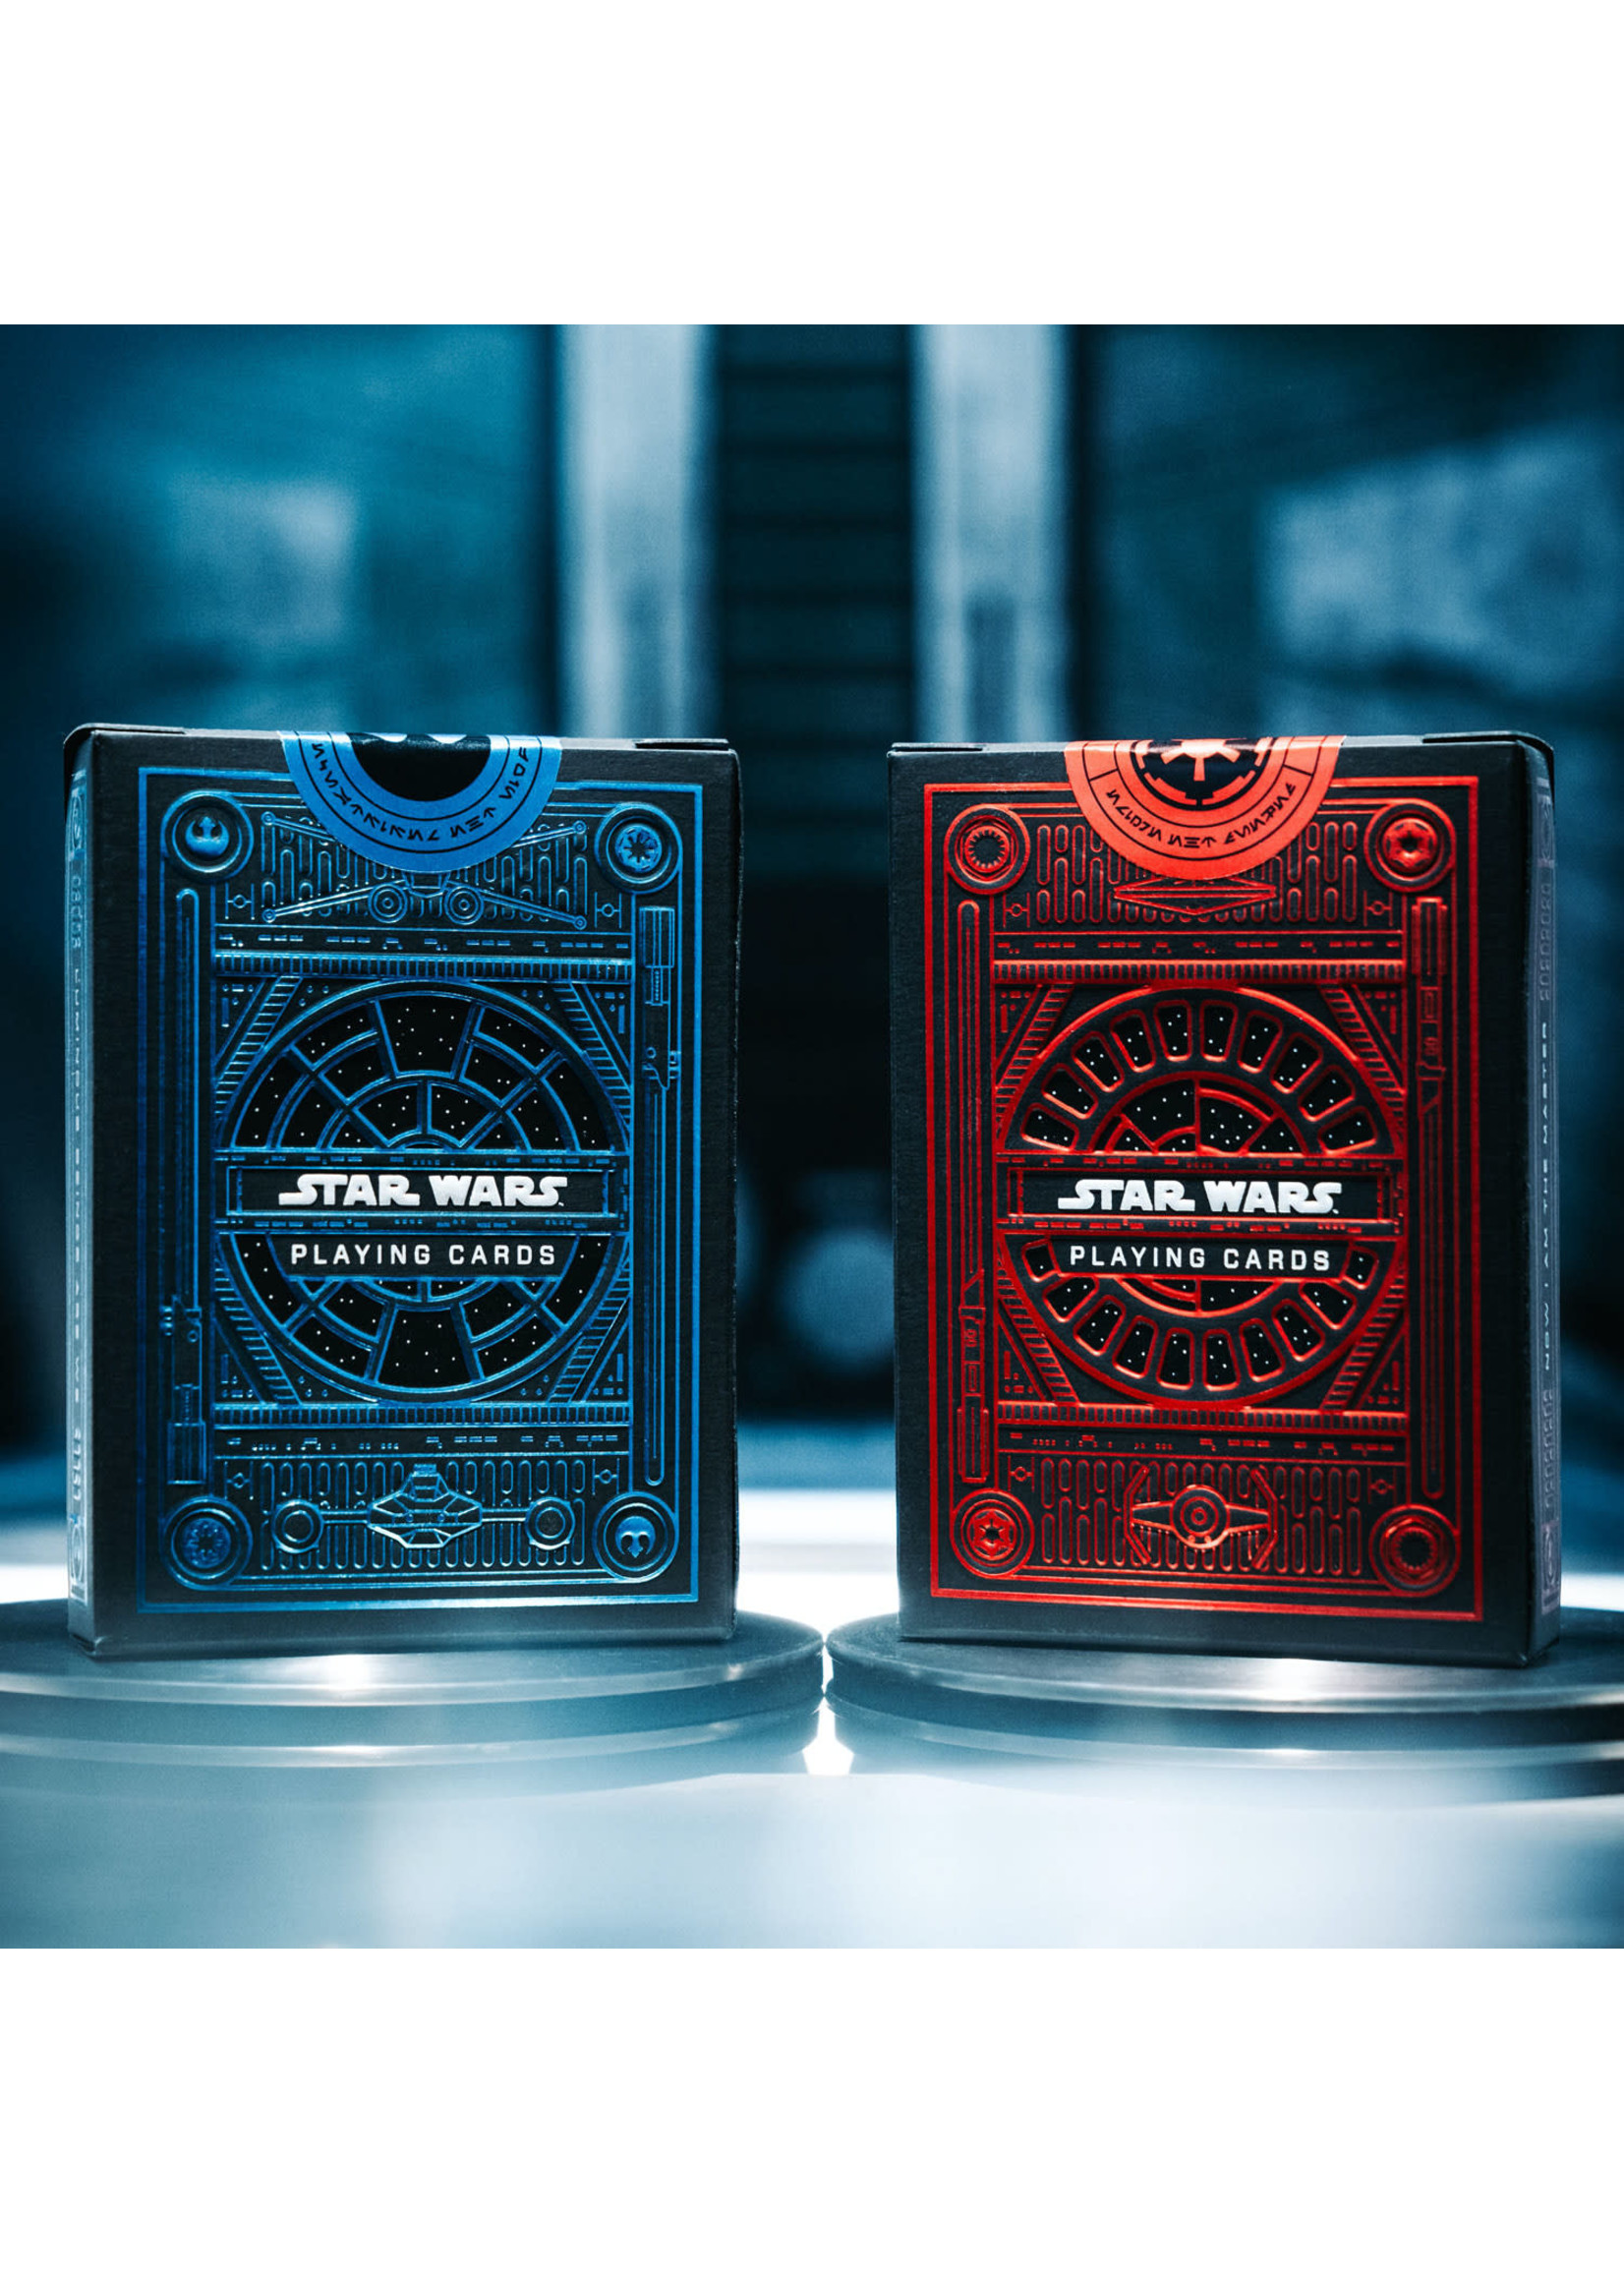 Theory 11 Premium Playing Cards Star Wars Sith